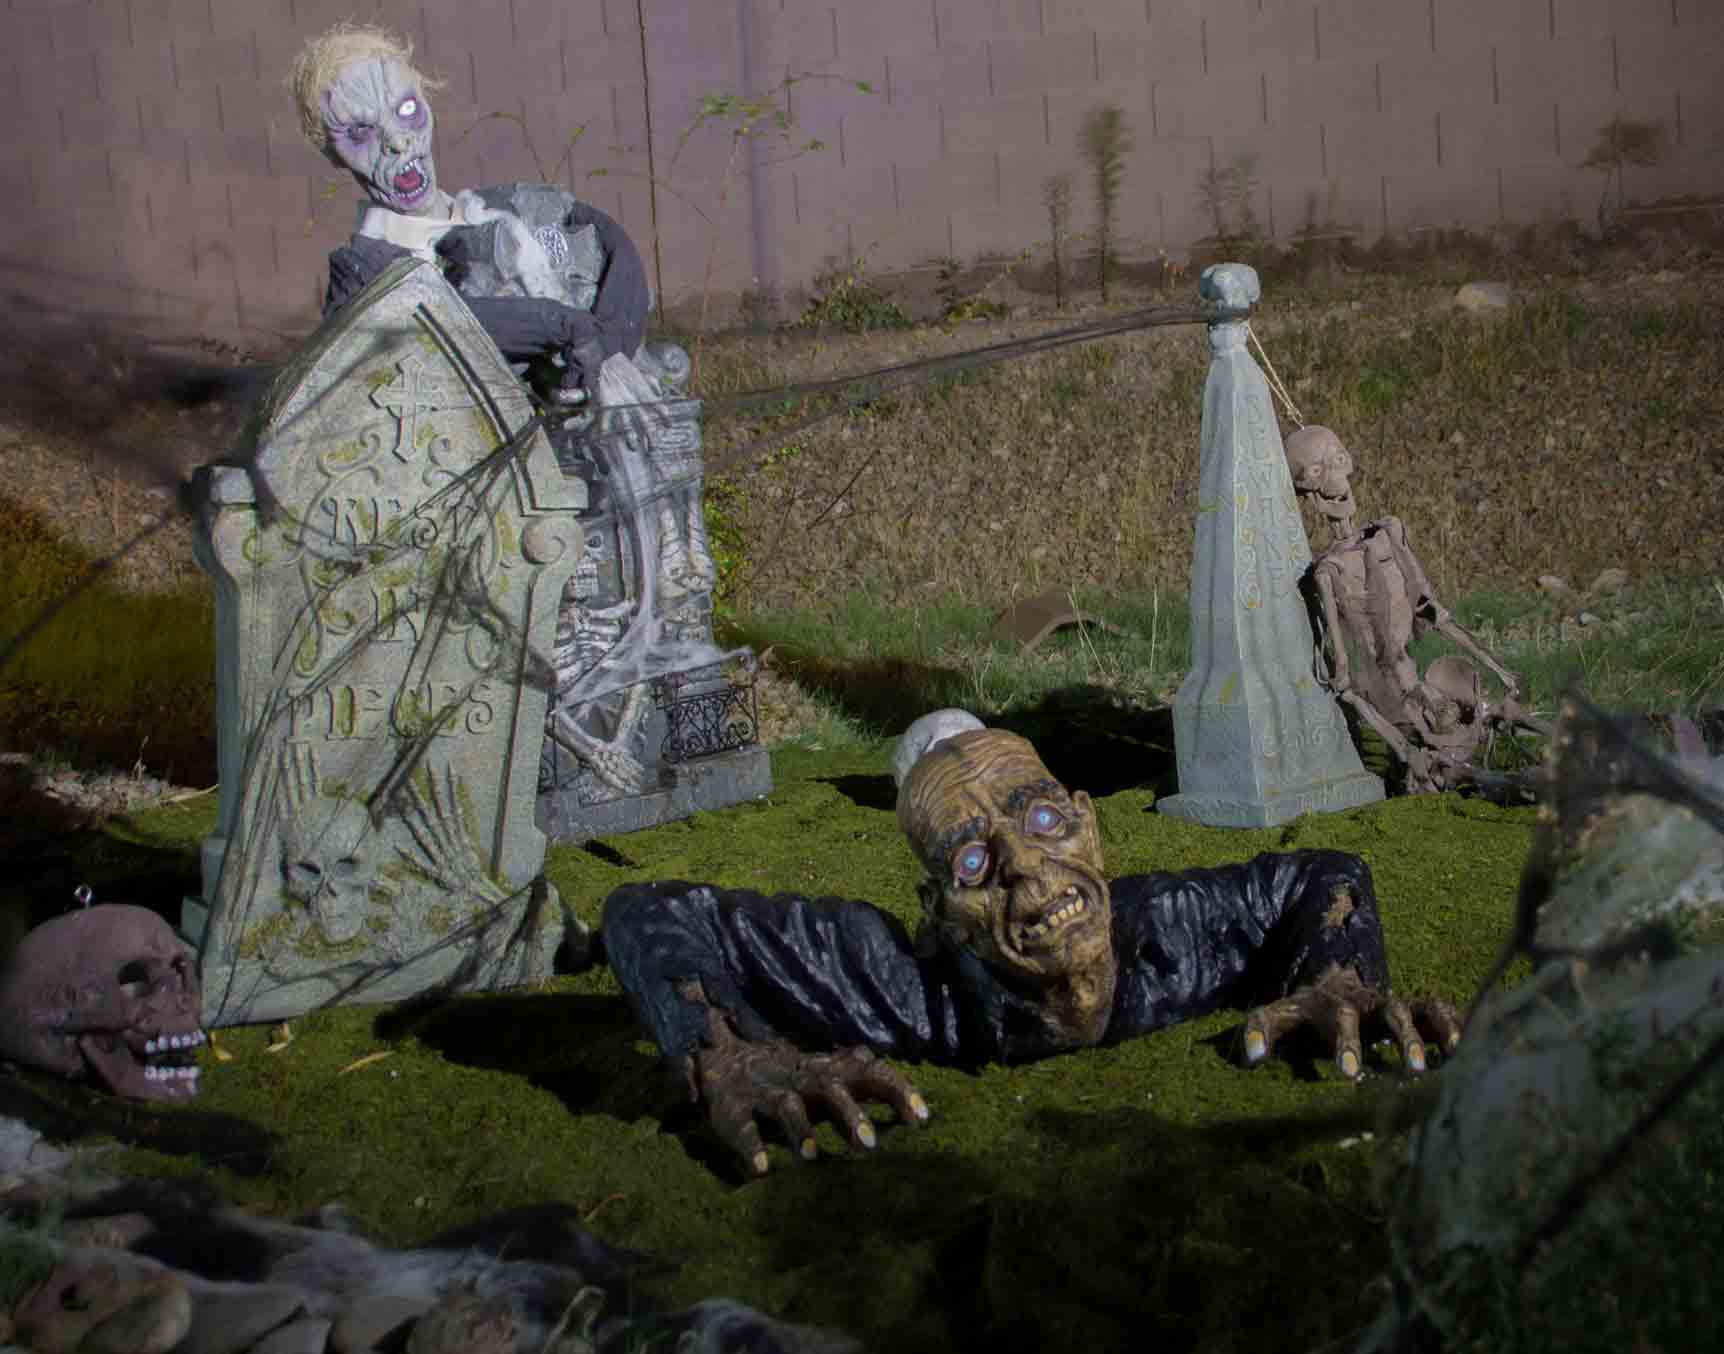 Halloween graveyard install by Holiday Decorations in Las Vegas